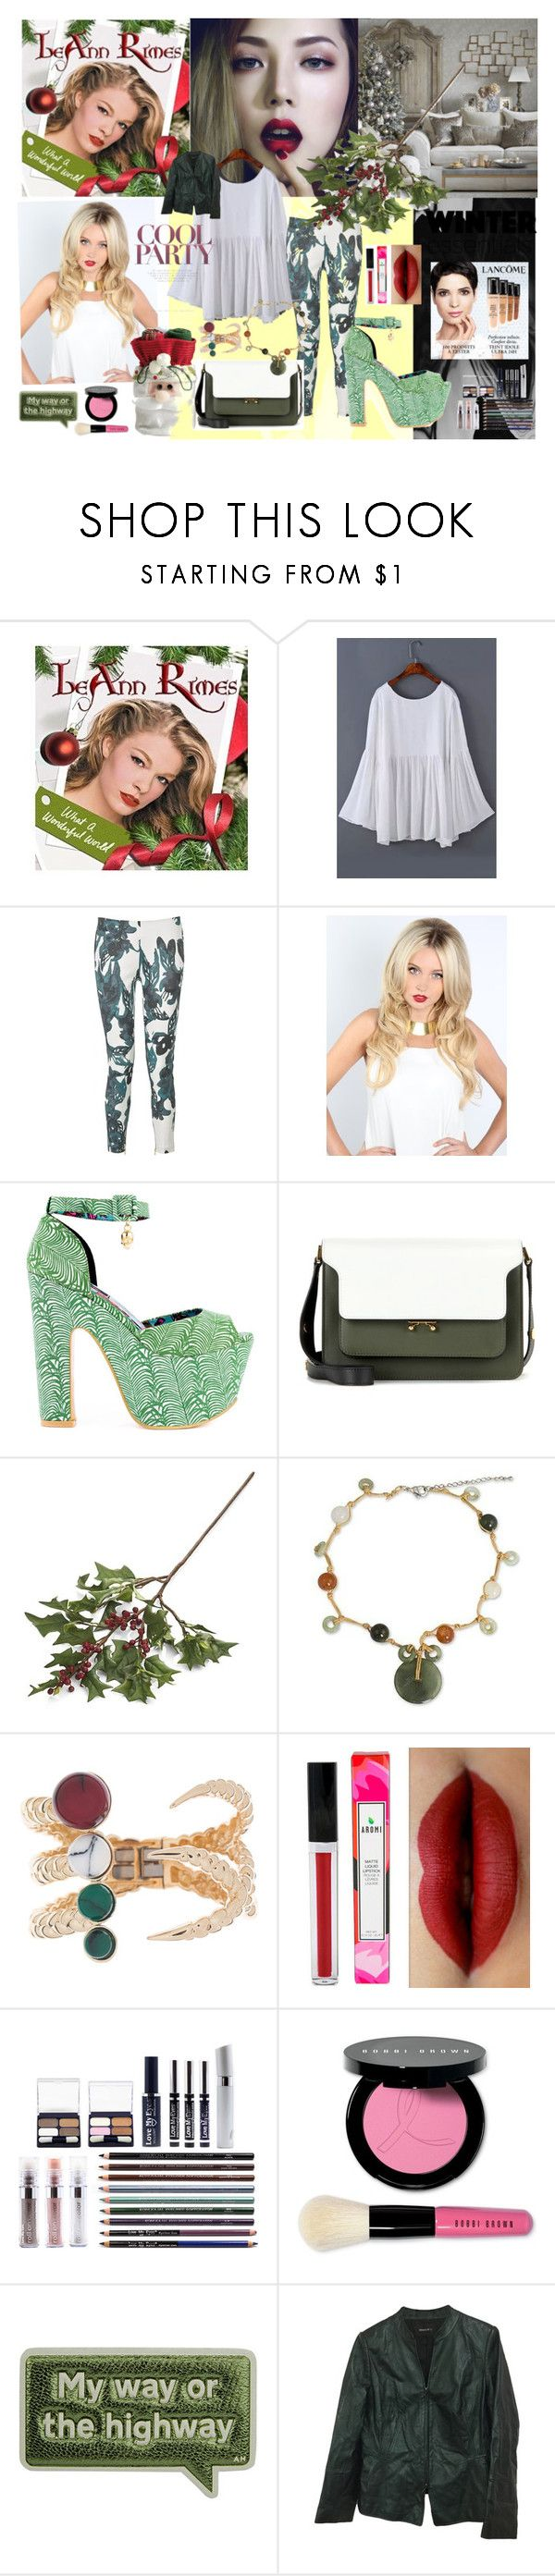 """#50: I miss you like Christmas - Leann Rimes"" by sarah-m-smith ❤ liked on Polyvore featuring DAY Birger et Mikkelsen, Iron Fist, Marni, Crate and Barrel, NOVICA, Eshvi, Bobbi Brown Cosmetics, Anya Hindmarch, Lafayette 148 New York and country"